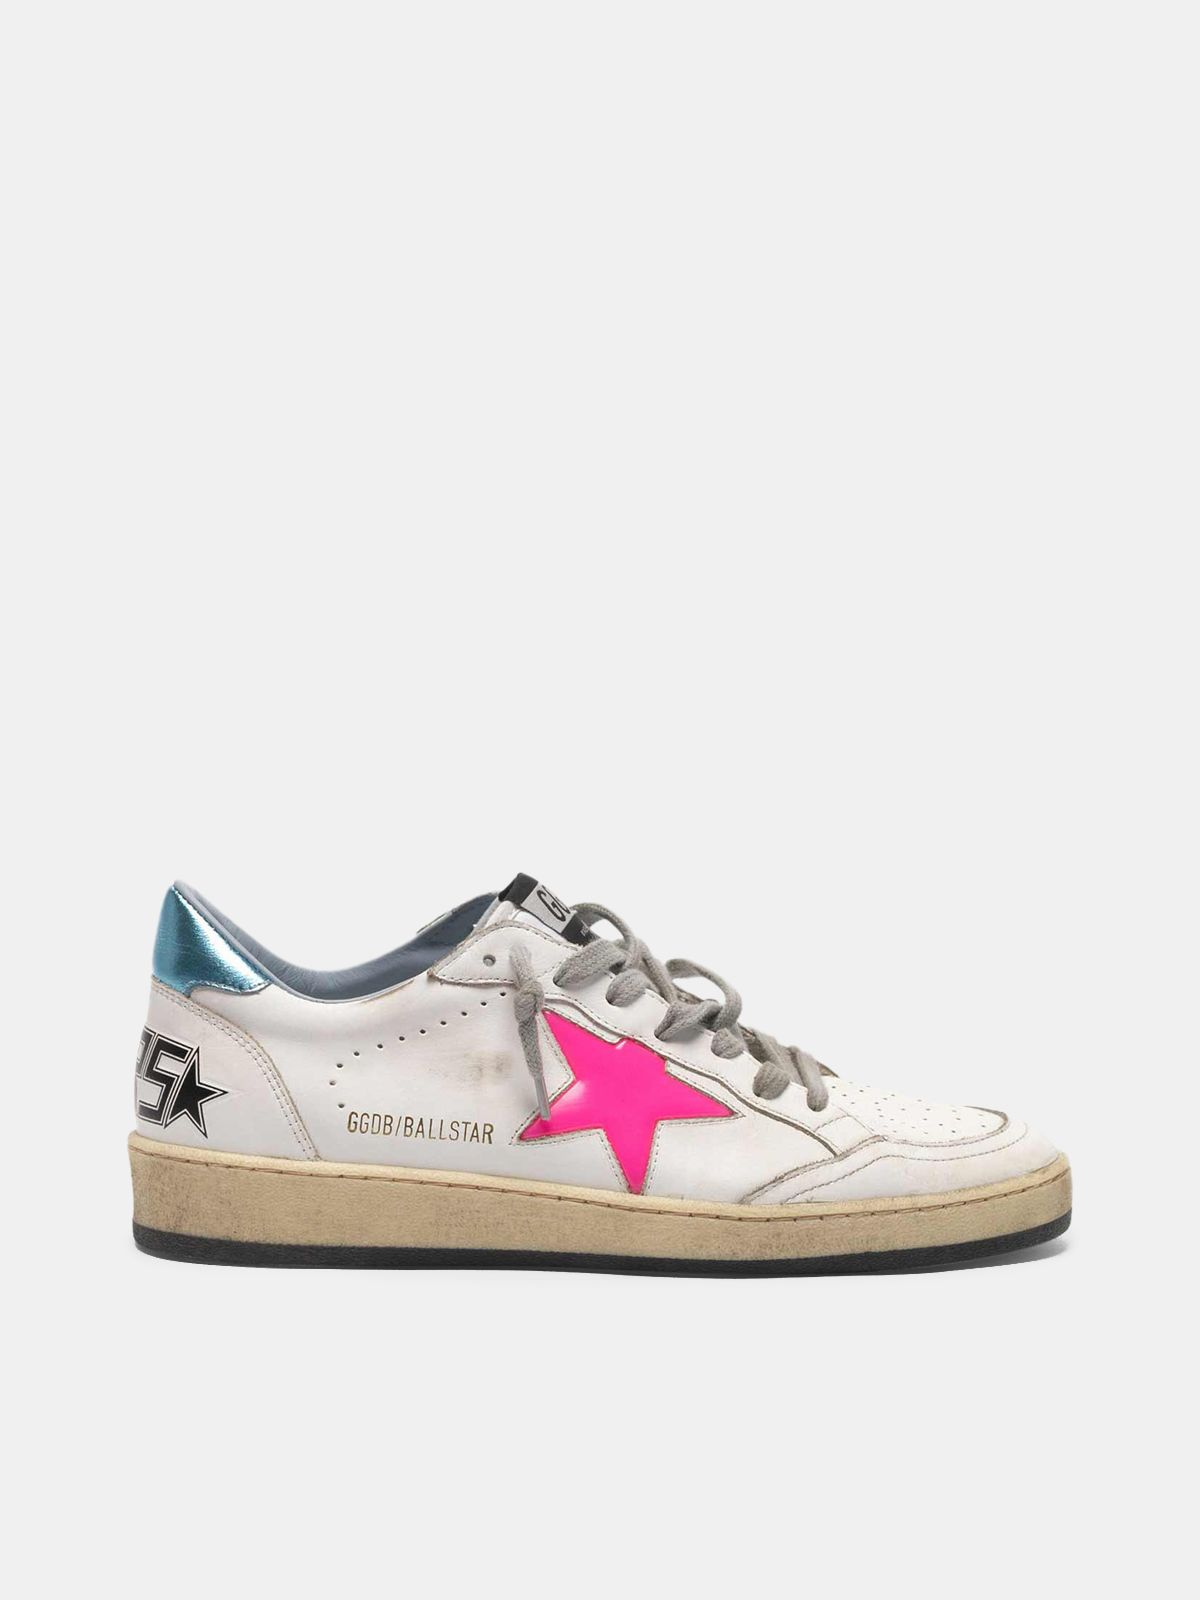 Golden Goose - Ball Star sneakers with fuchsia star and sky blue heel tab in